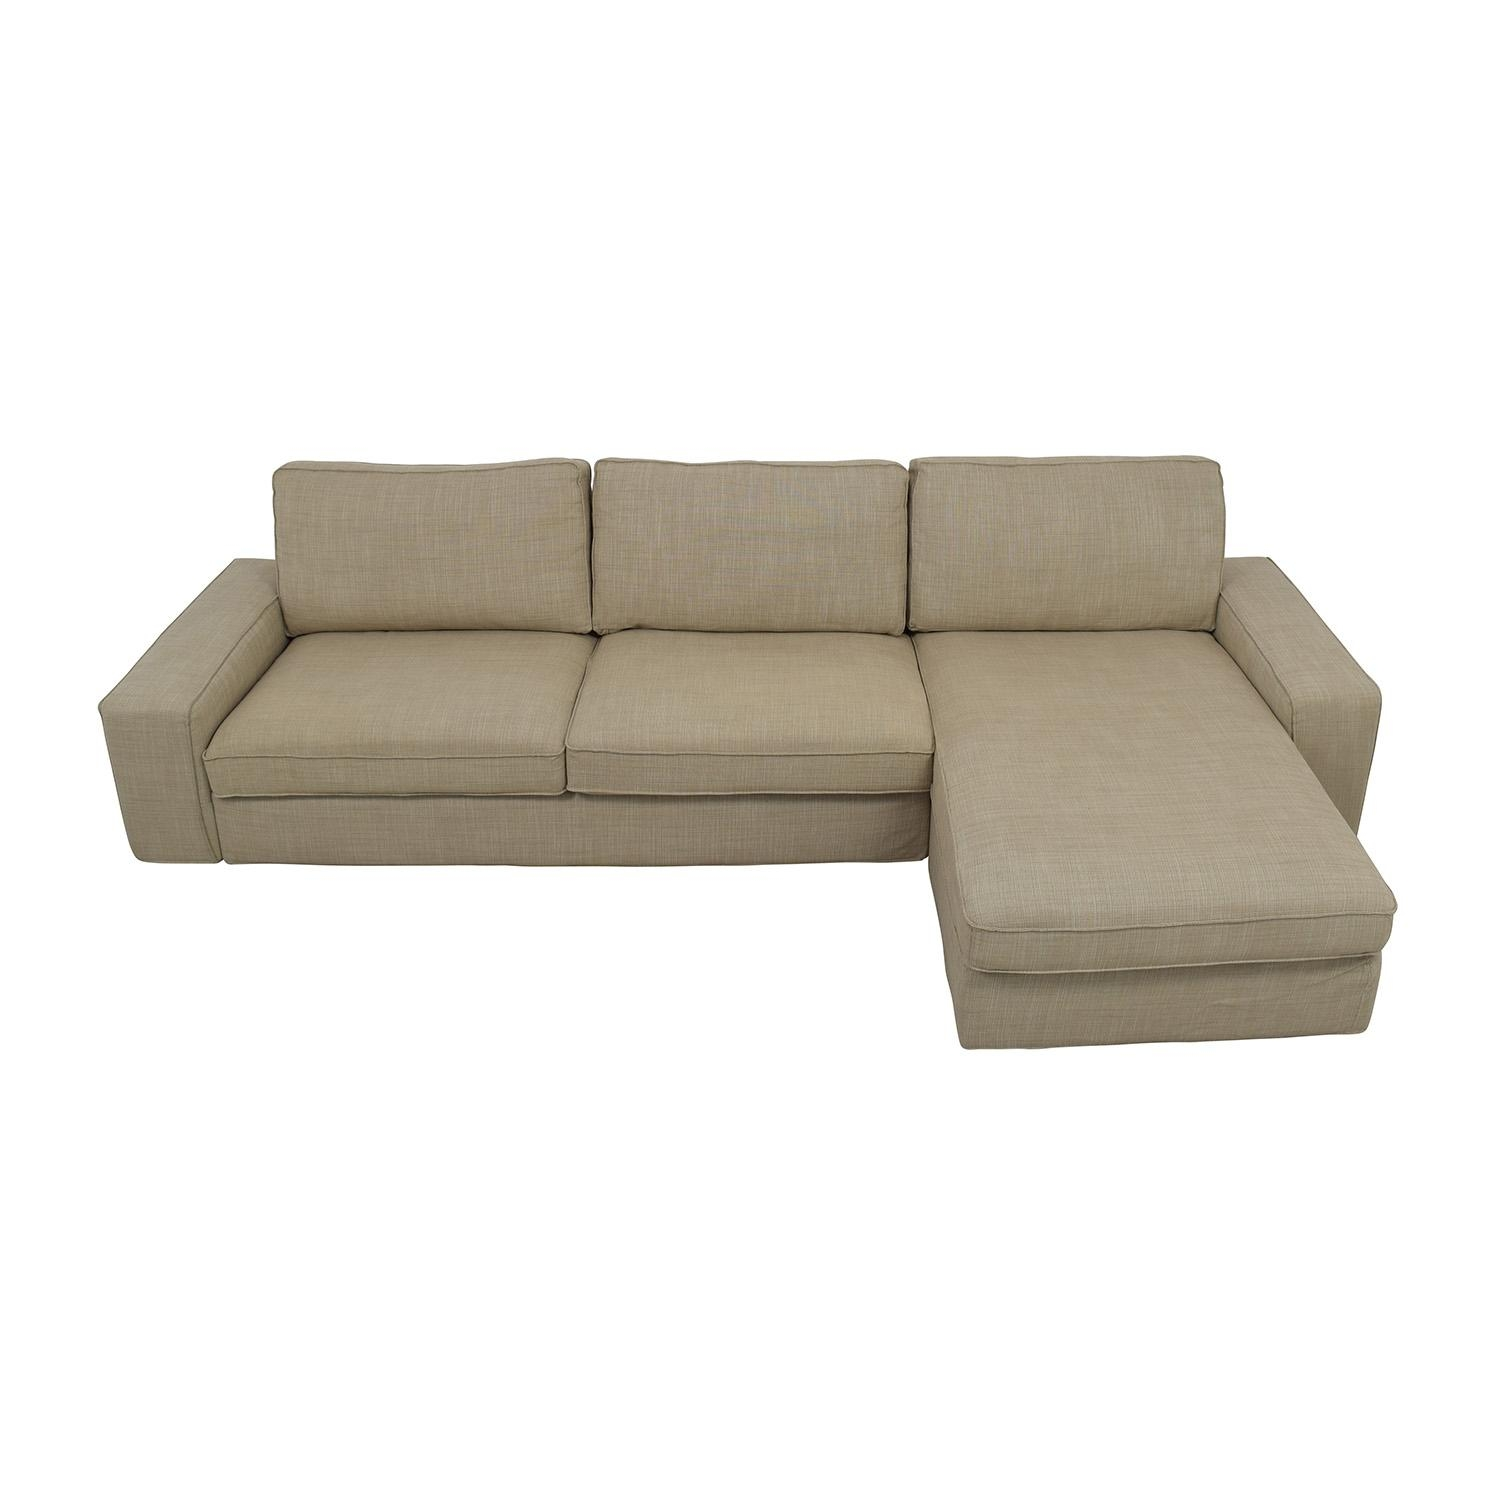 Ikea Bezüge Sofa 20 Photos Beige Sofas Sofa Ideas